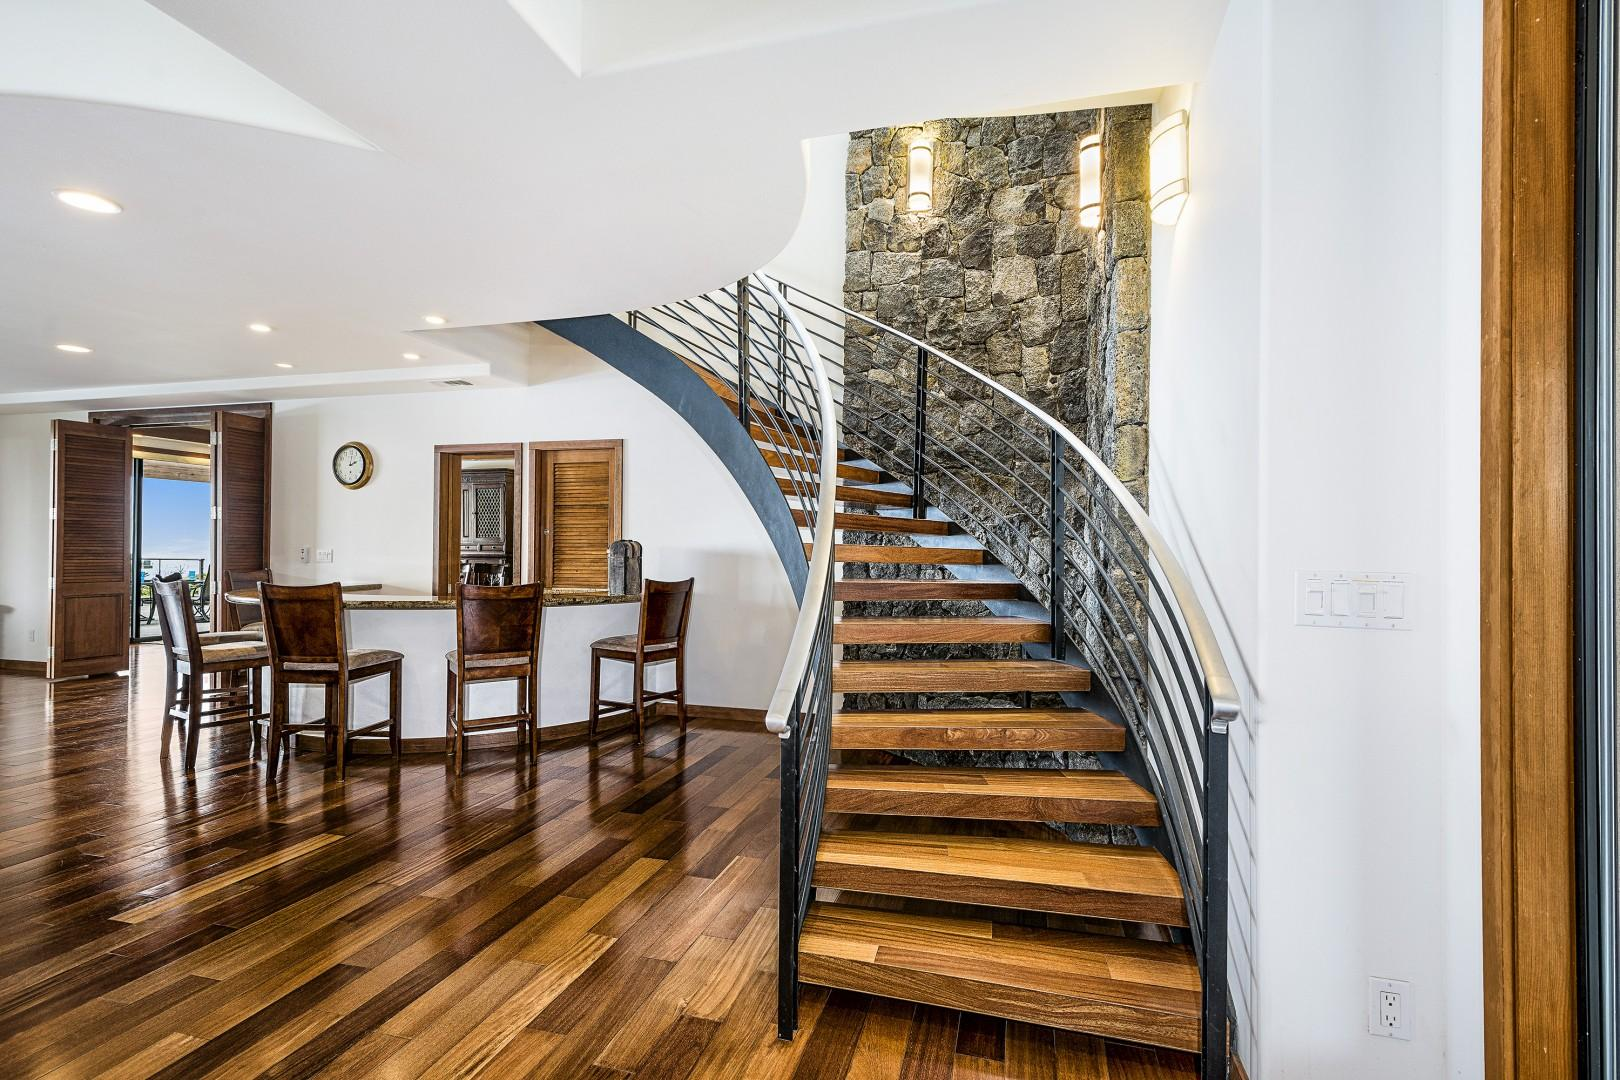 Stairs leading to the upper level